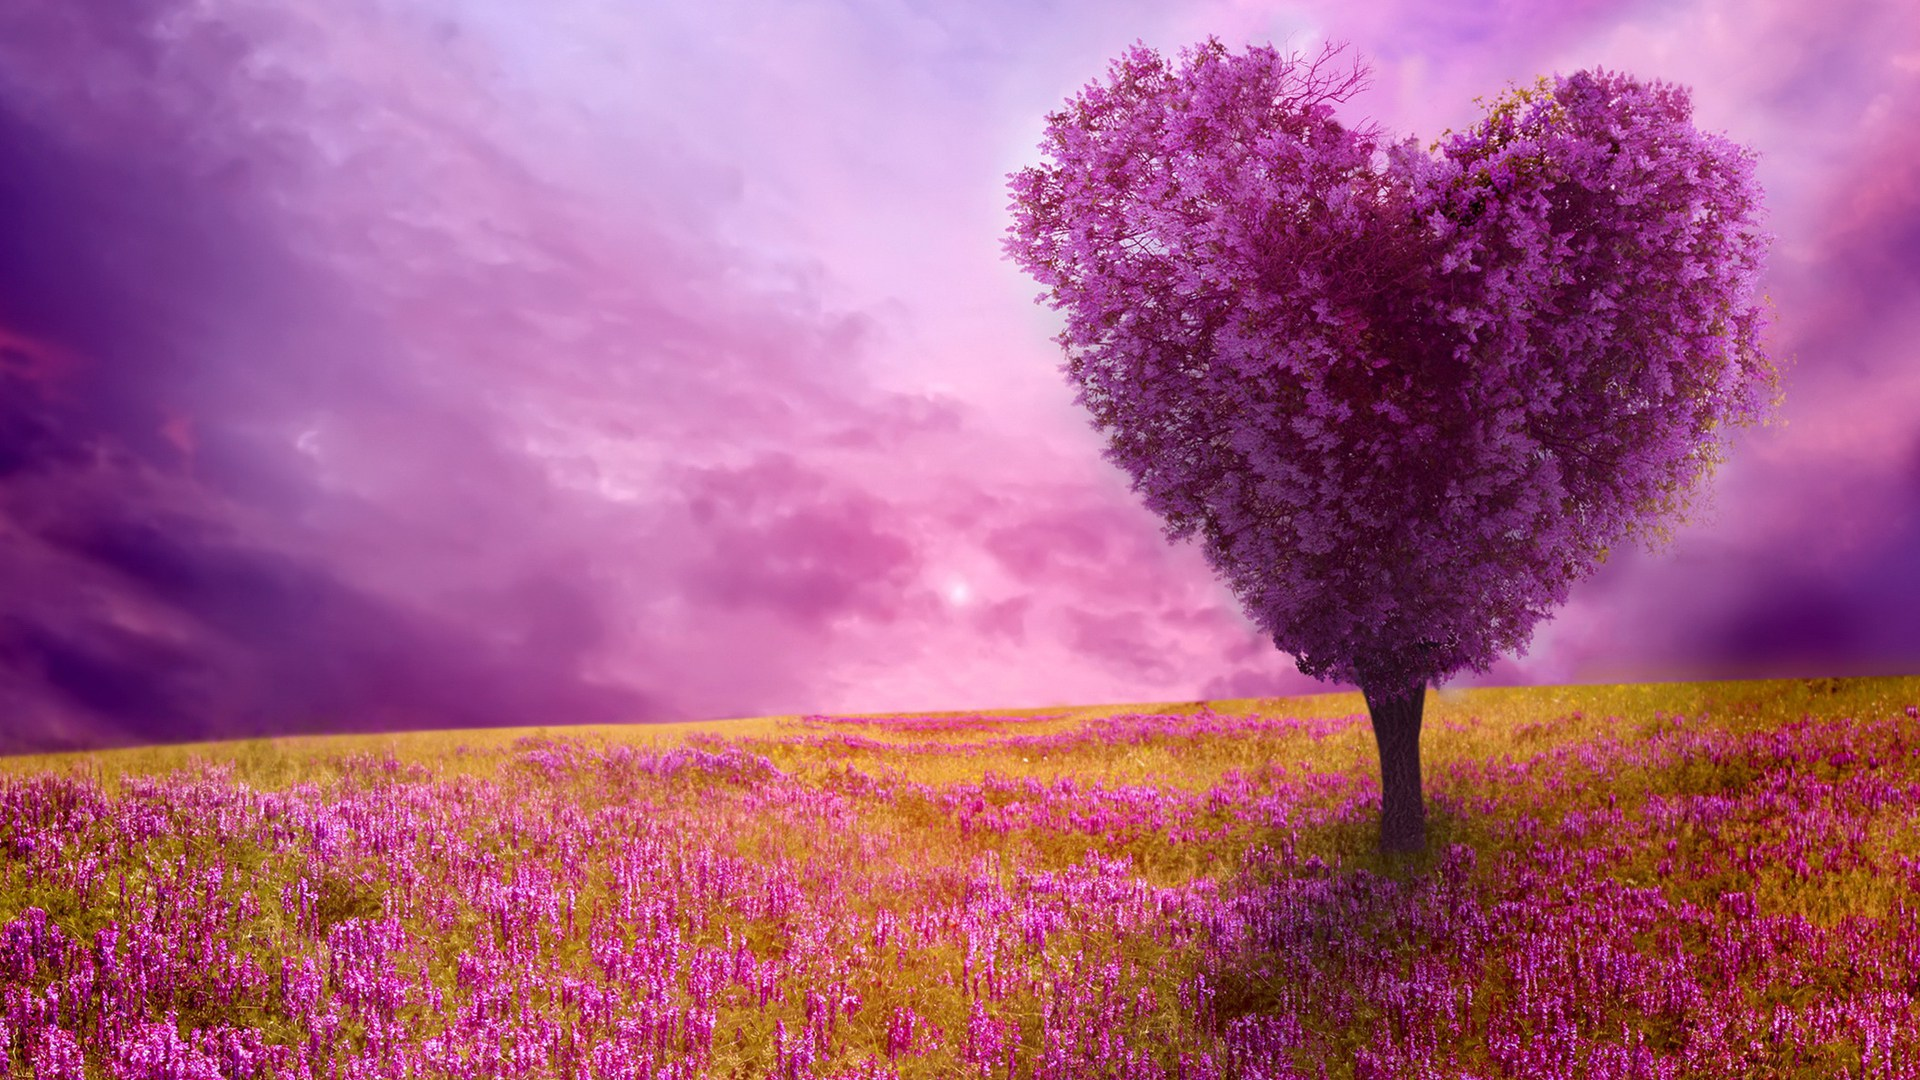 Hd Spring Wallpapers Wallpapersafari